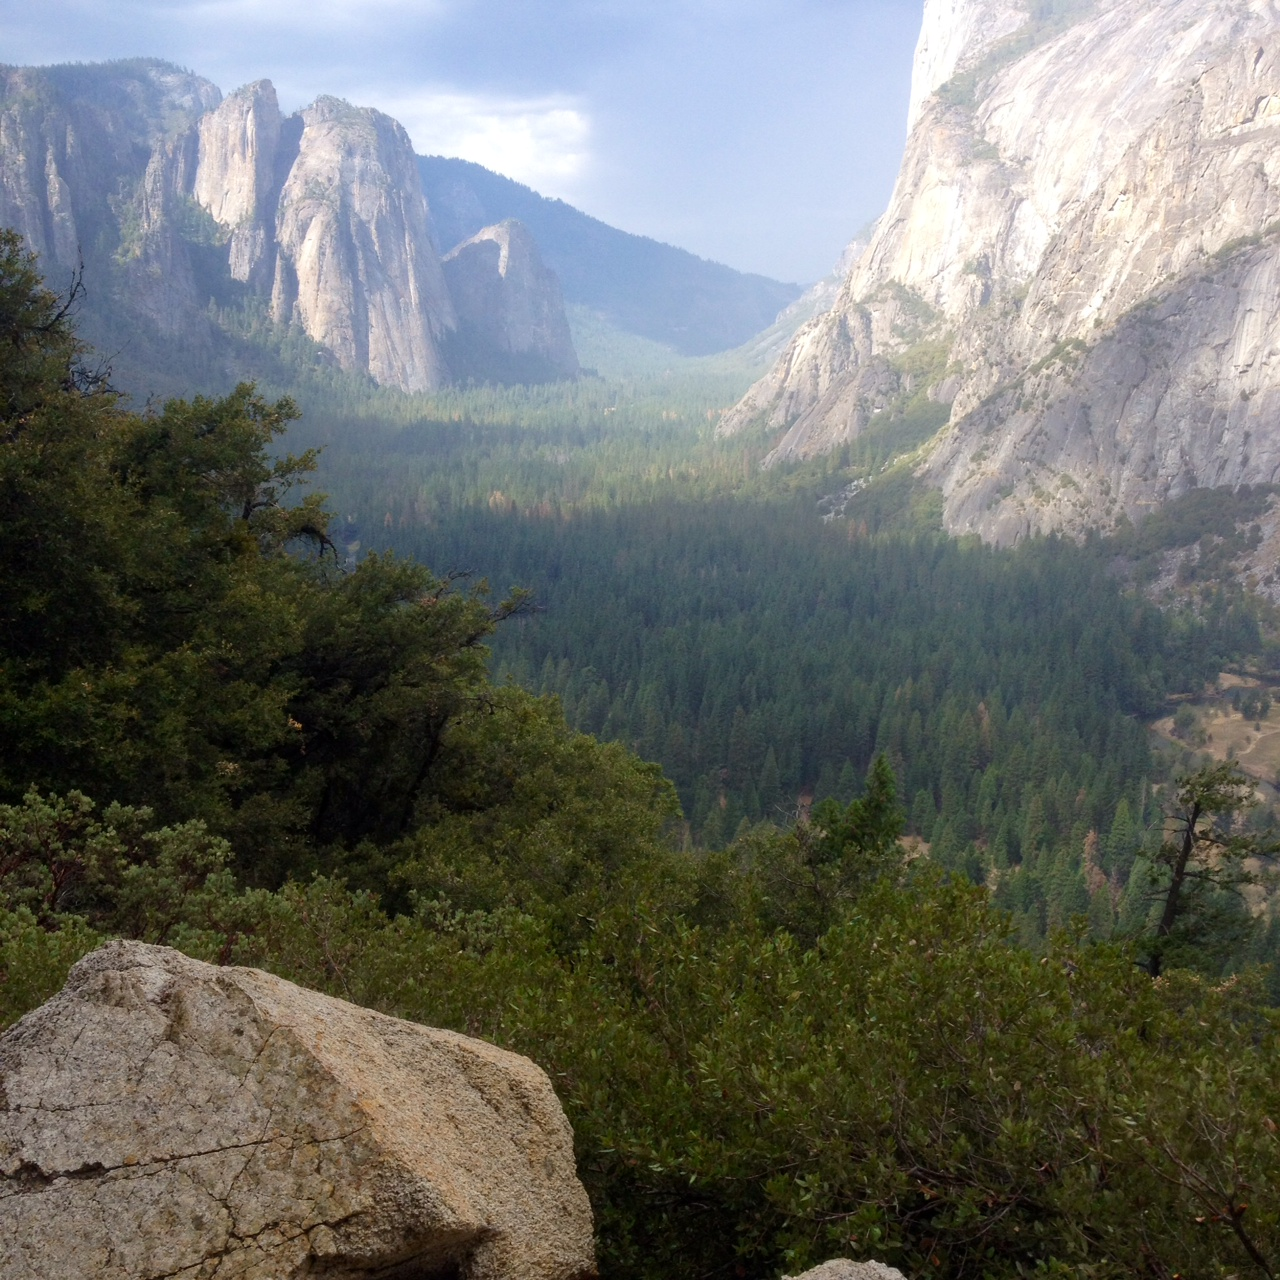 The mystical Yosemite Valley